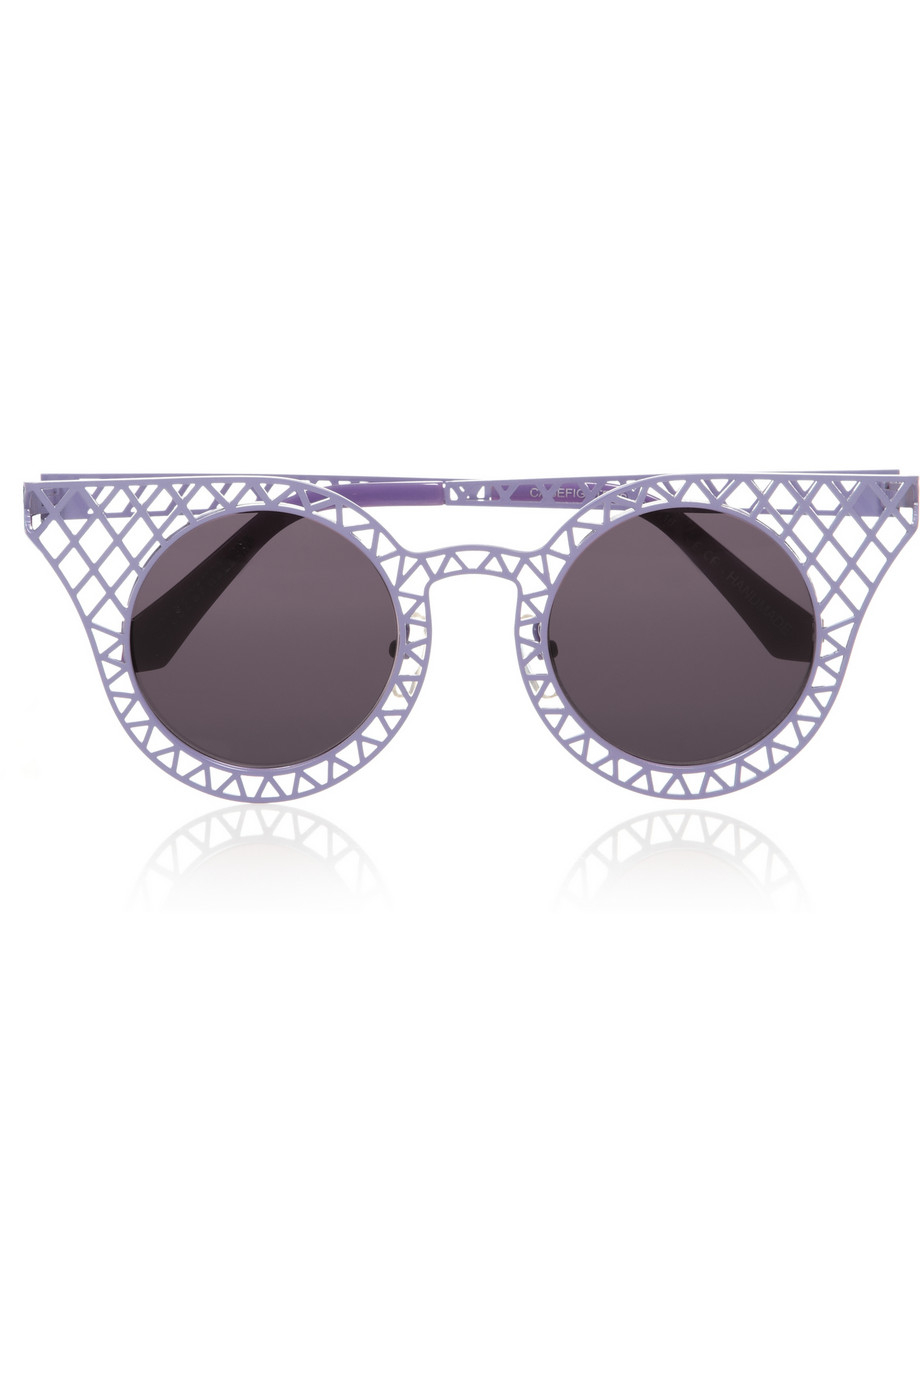 House of Holland Cagefighters Roundframe Latticed Metal Sunglasses in Lavender (Purple)